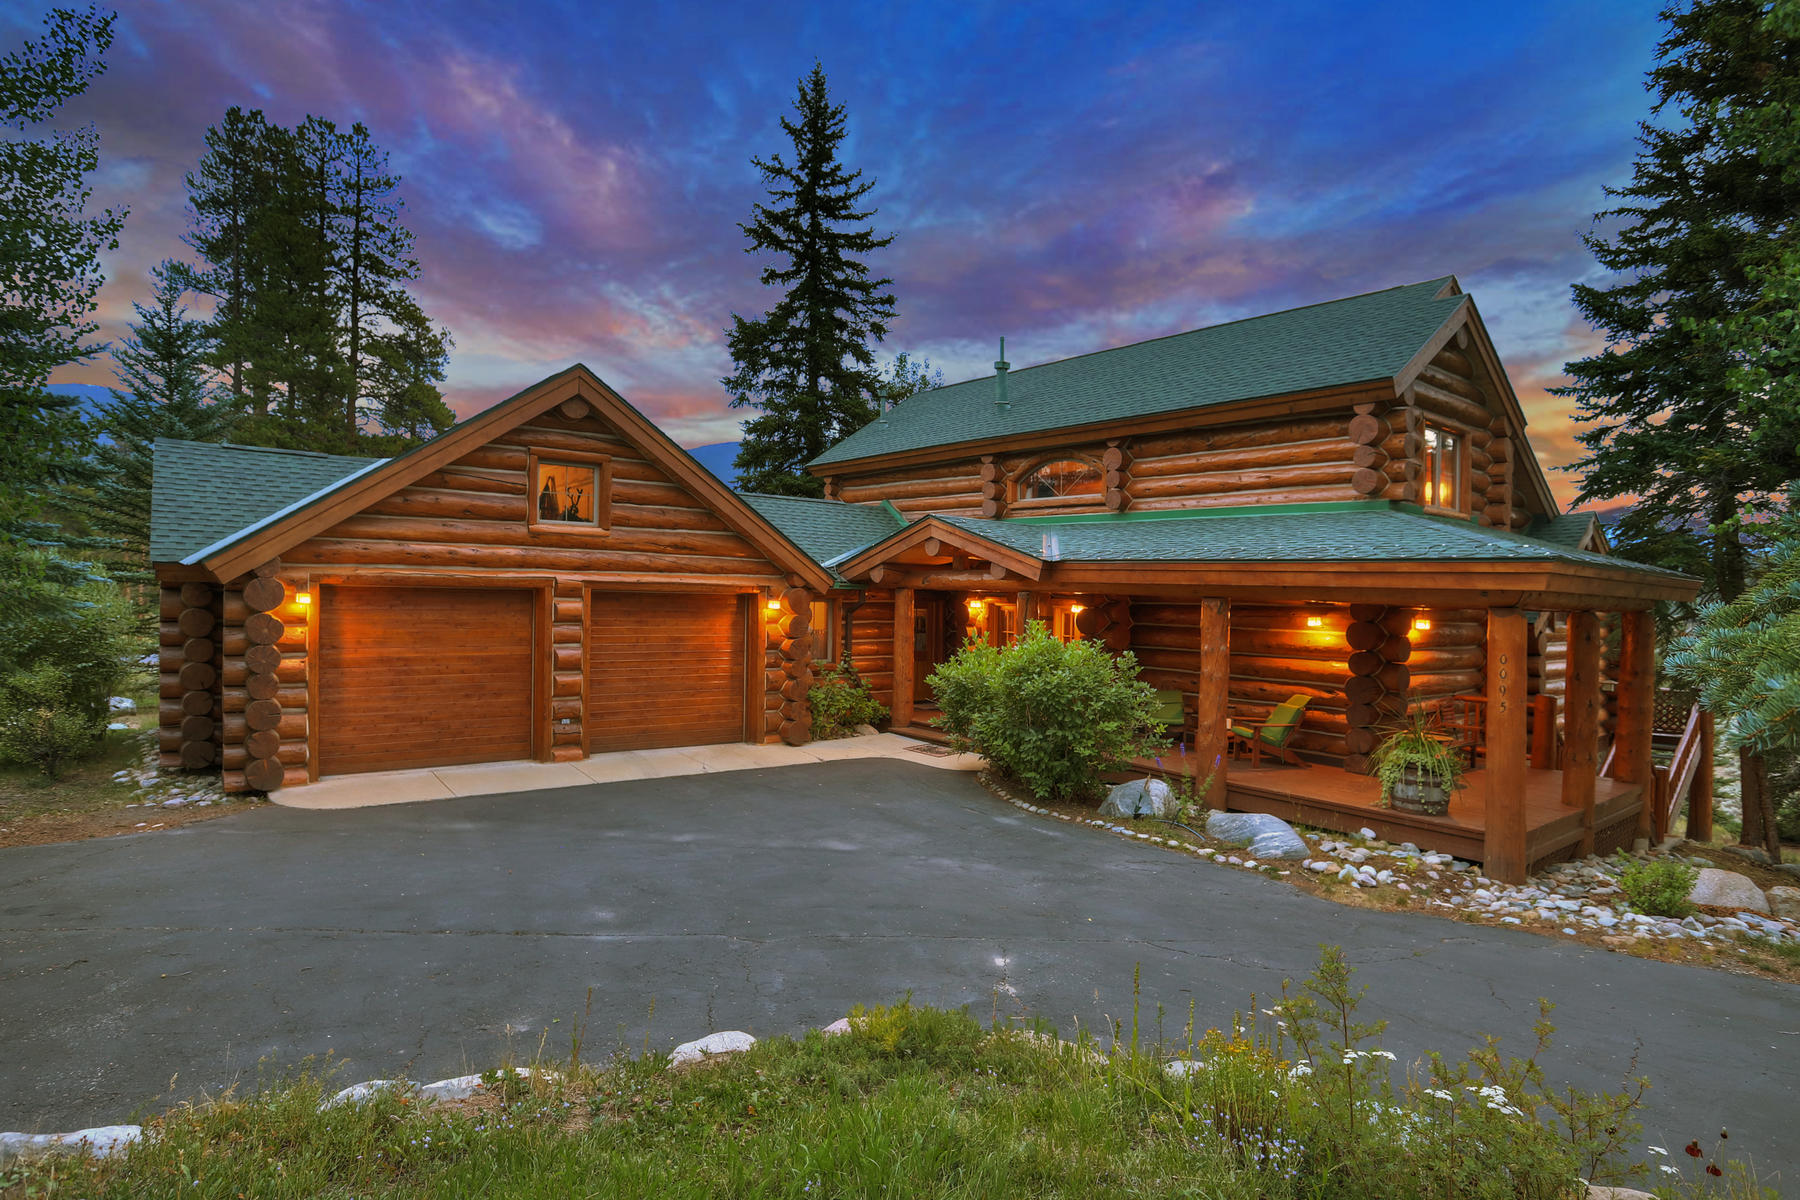 Single Family Home for Active at Log Home in Keystone West Ranch 95 Aster Court Keystone, Colorado 80435 United States